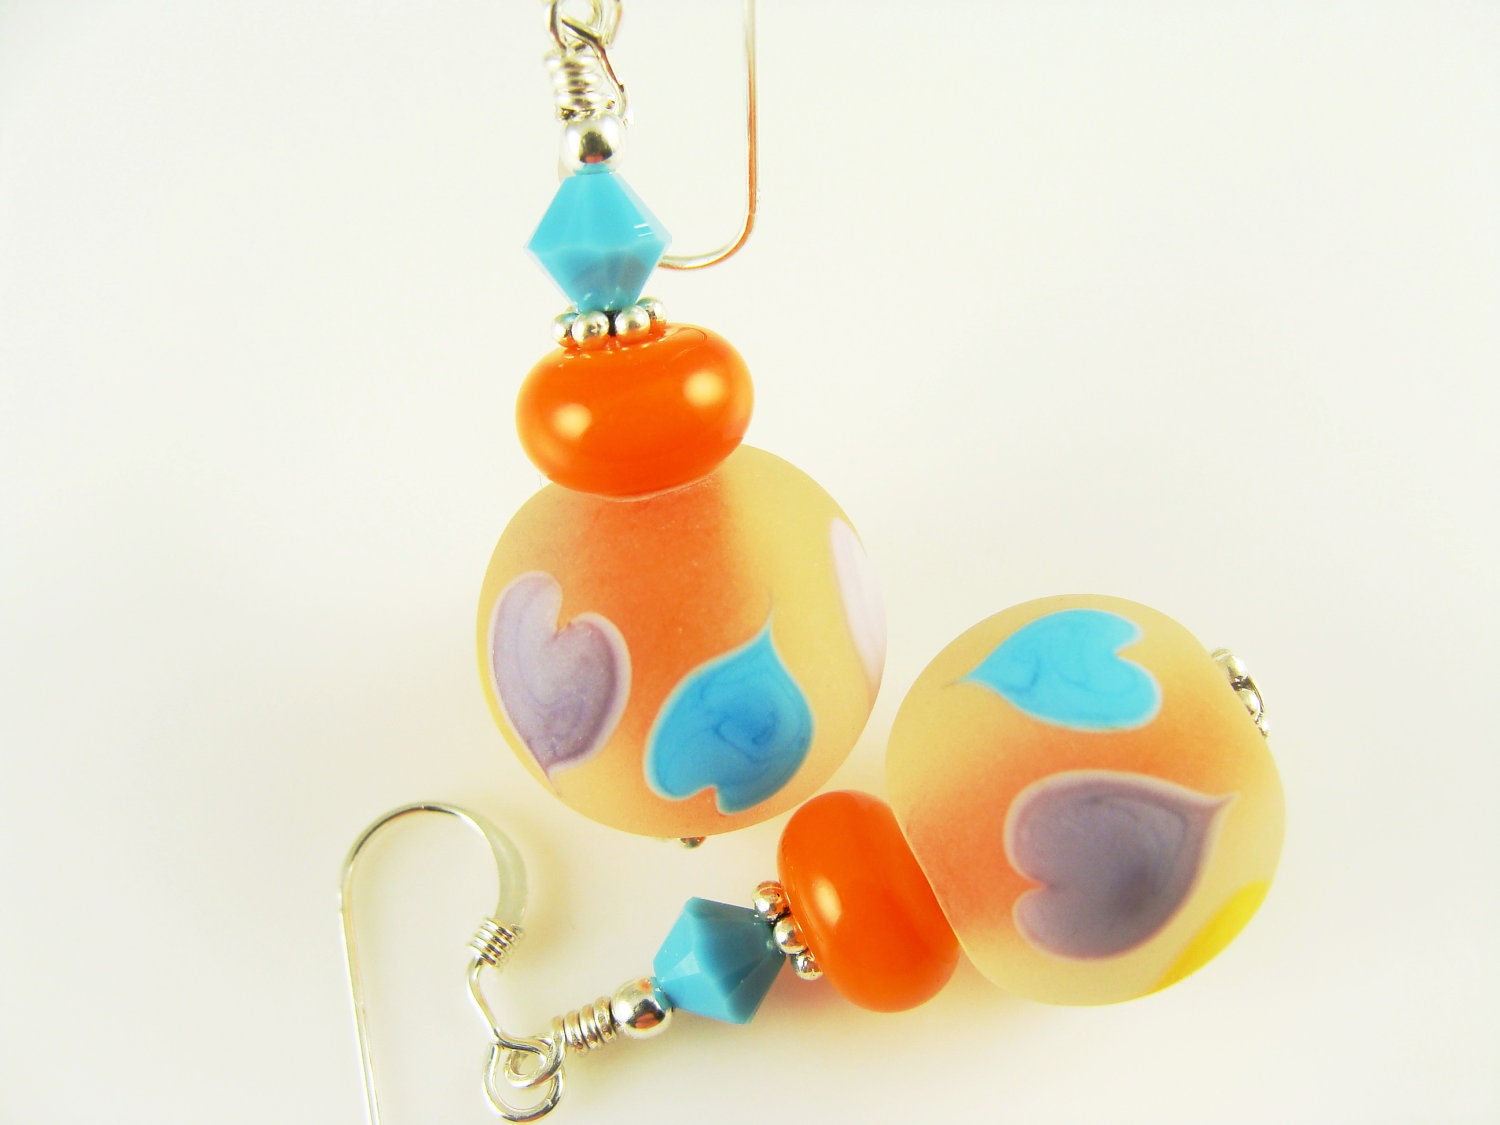 Heart Lampwork Earrings, Glass Bead Earrings, Orange Dangle Earrings, Colorful Lampwork Jewelry, Beaded Earrings